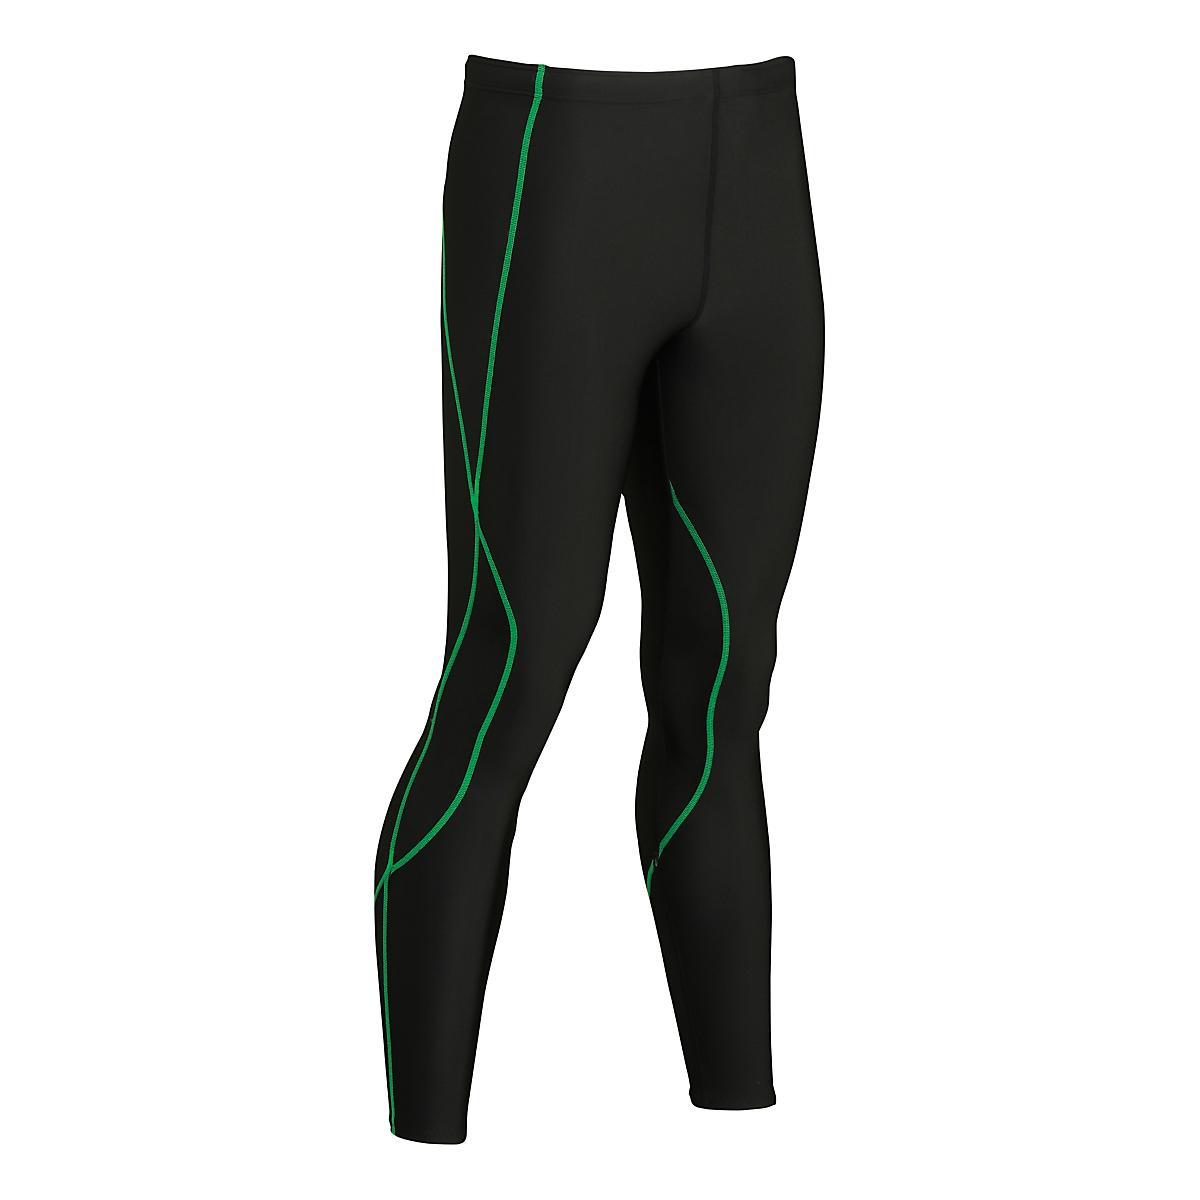 Men's CW-X�TraXter Tights